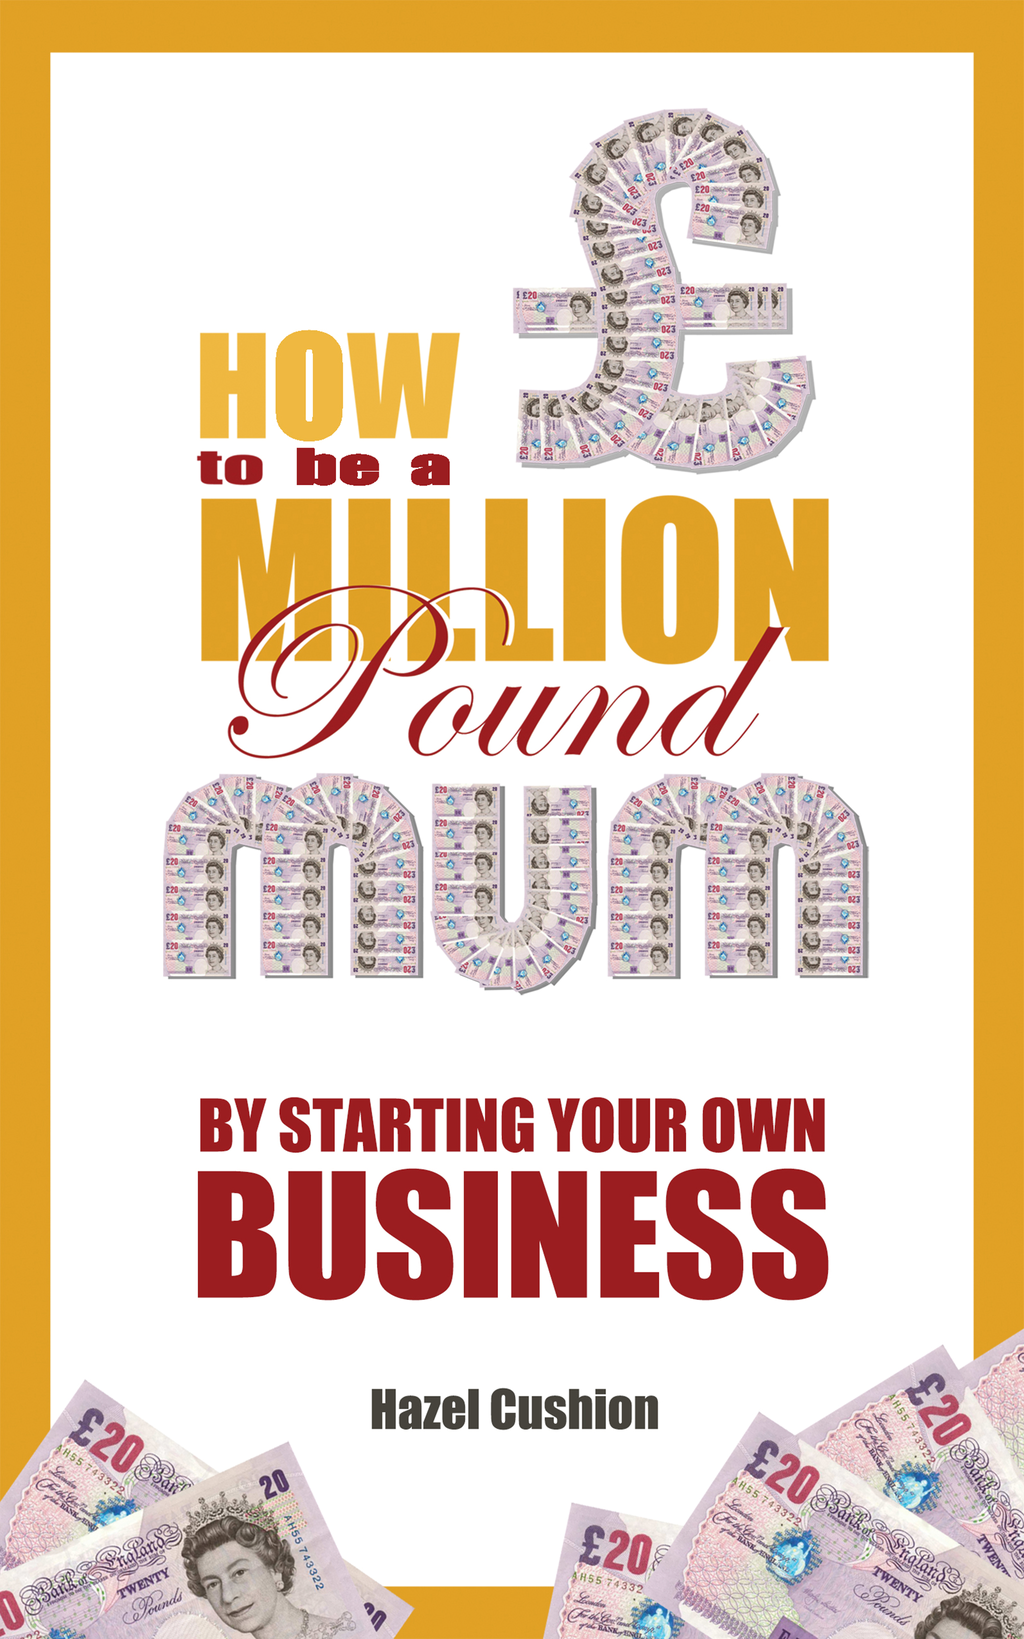 How To Be a Million Pound Mum By Starting Your Own Business